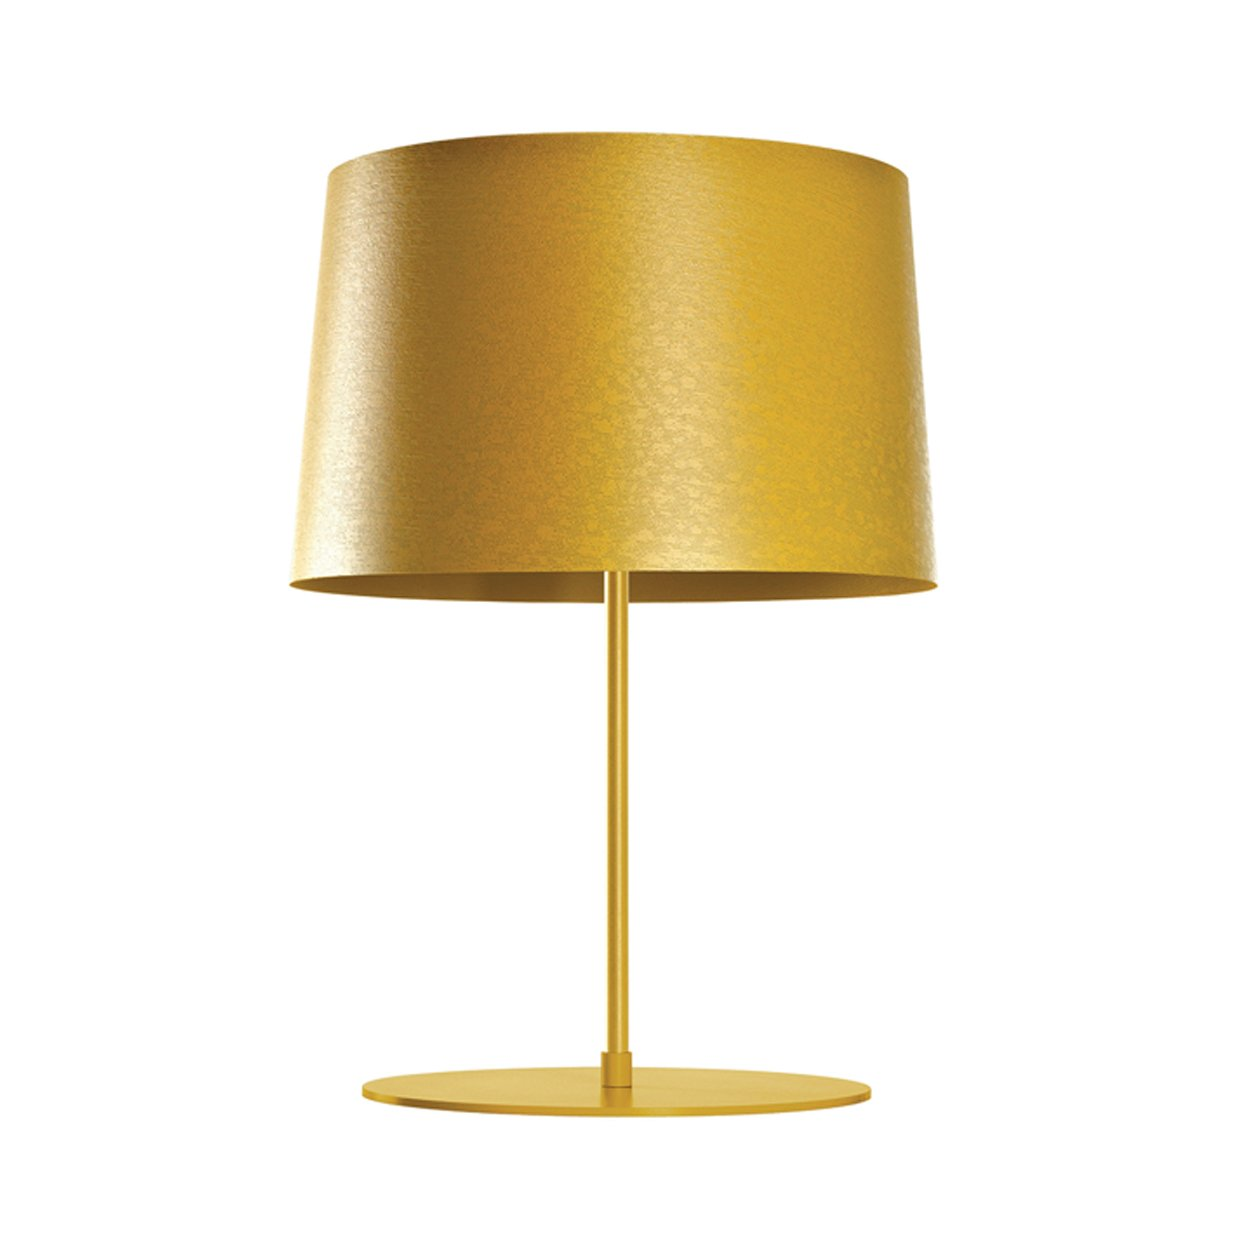 """This thin stick of a table lamp, standing trim on its fiberglass base, comes in four colors for every fashionista—and its innovative, reflective light """"diffuser"""" spreads a warm glow throughout the room. A supermodel for future lamp design. Read more about the Twiggy Table Lamp here.  Light Up Your Life by Ivane Soyombo"""